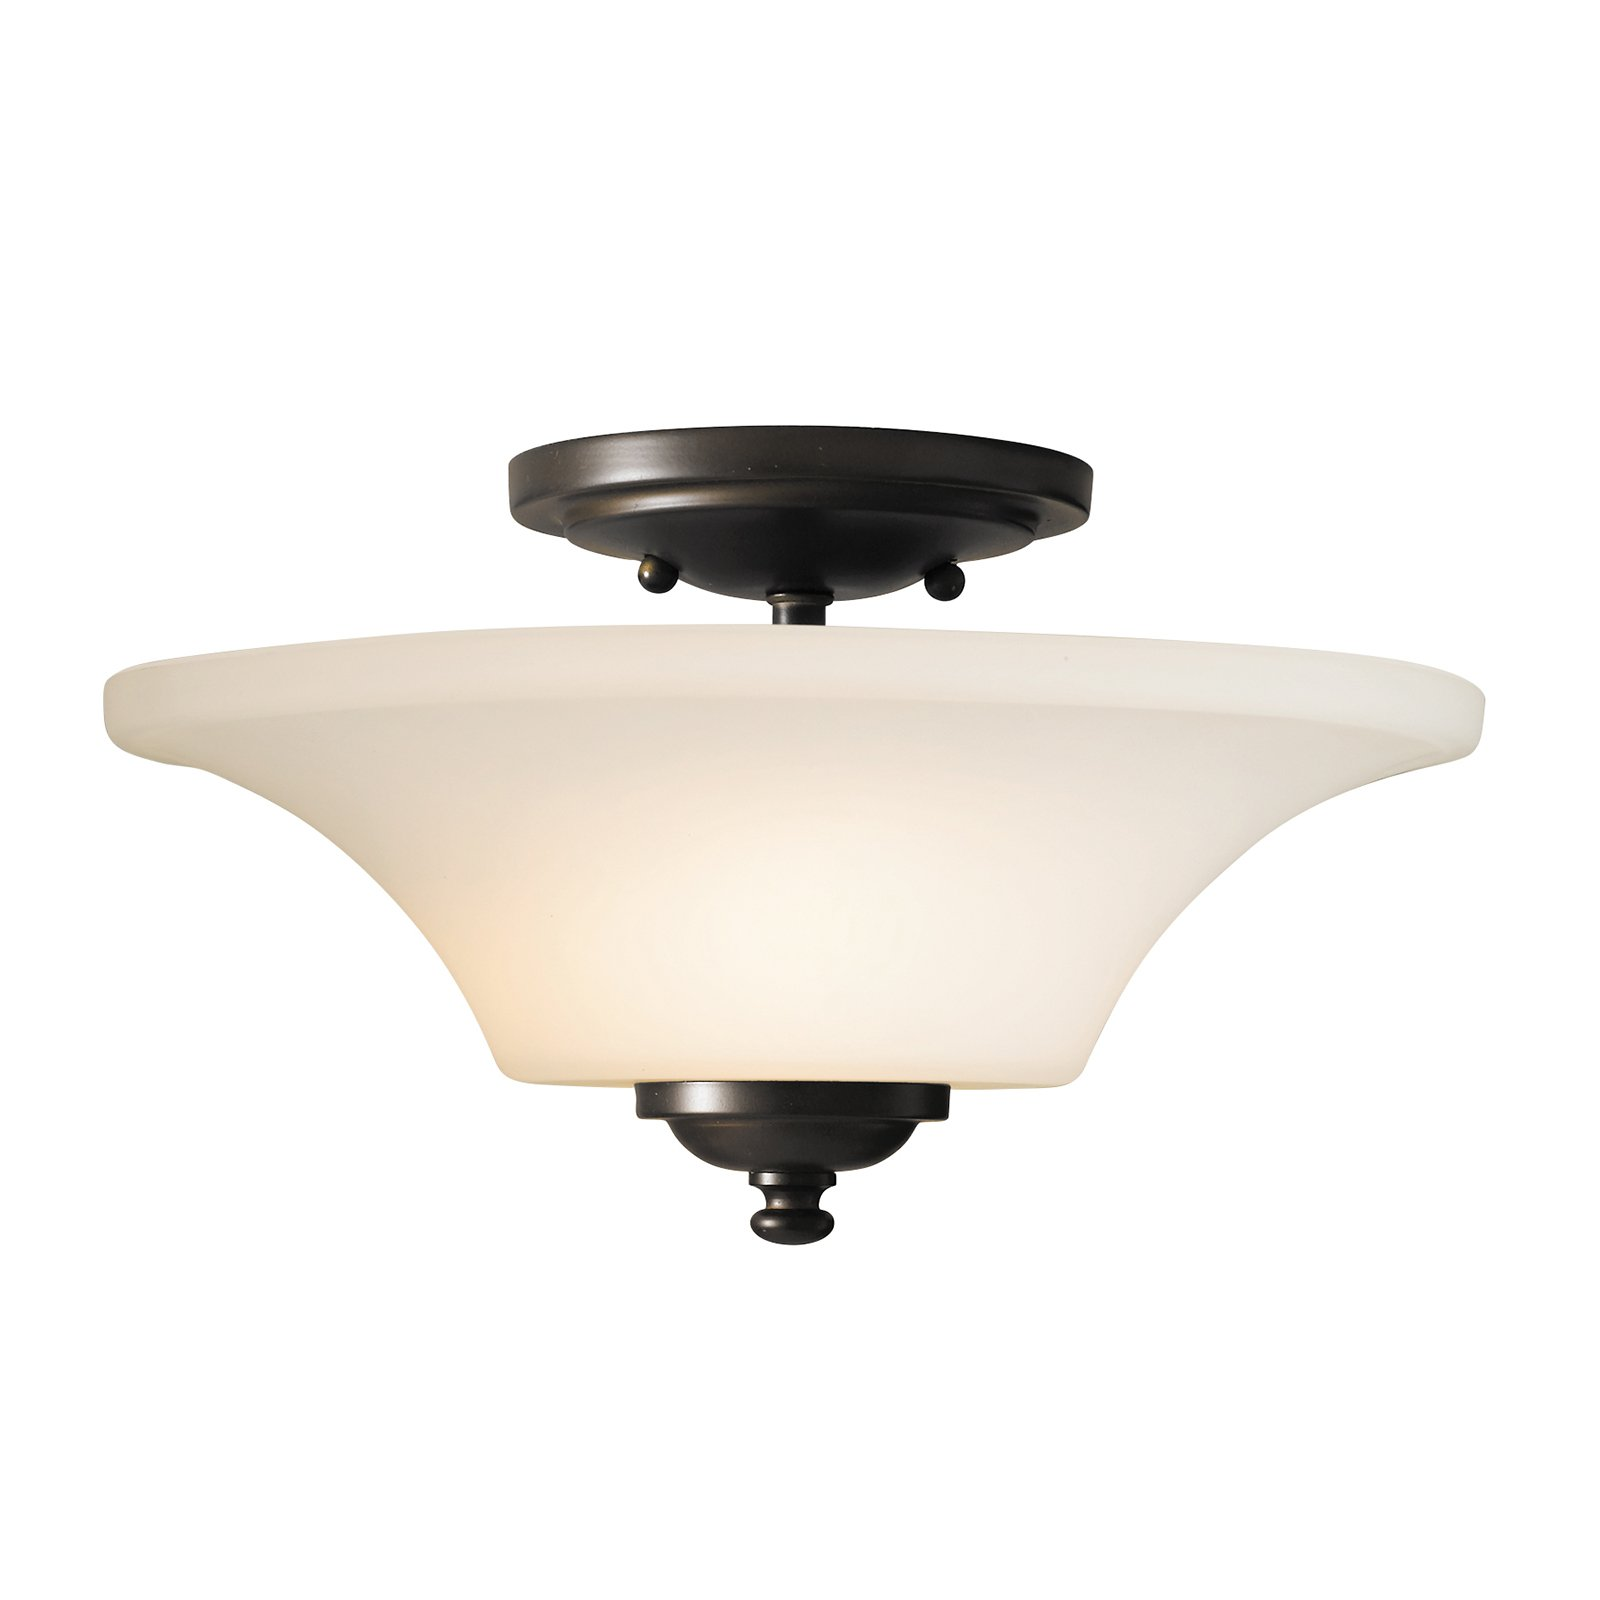 Feiss Barrington Ceiling Light 13W in. Oil Rubbed Bronze by Murray Feiss